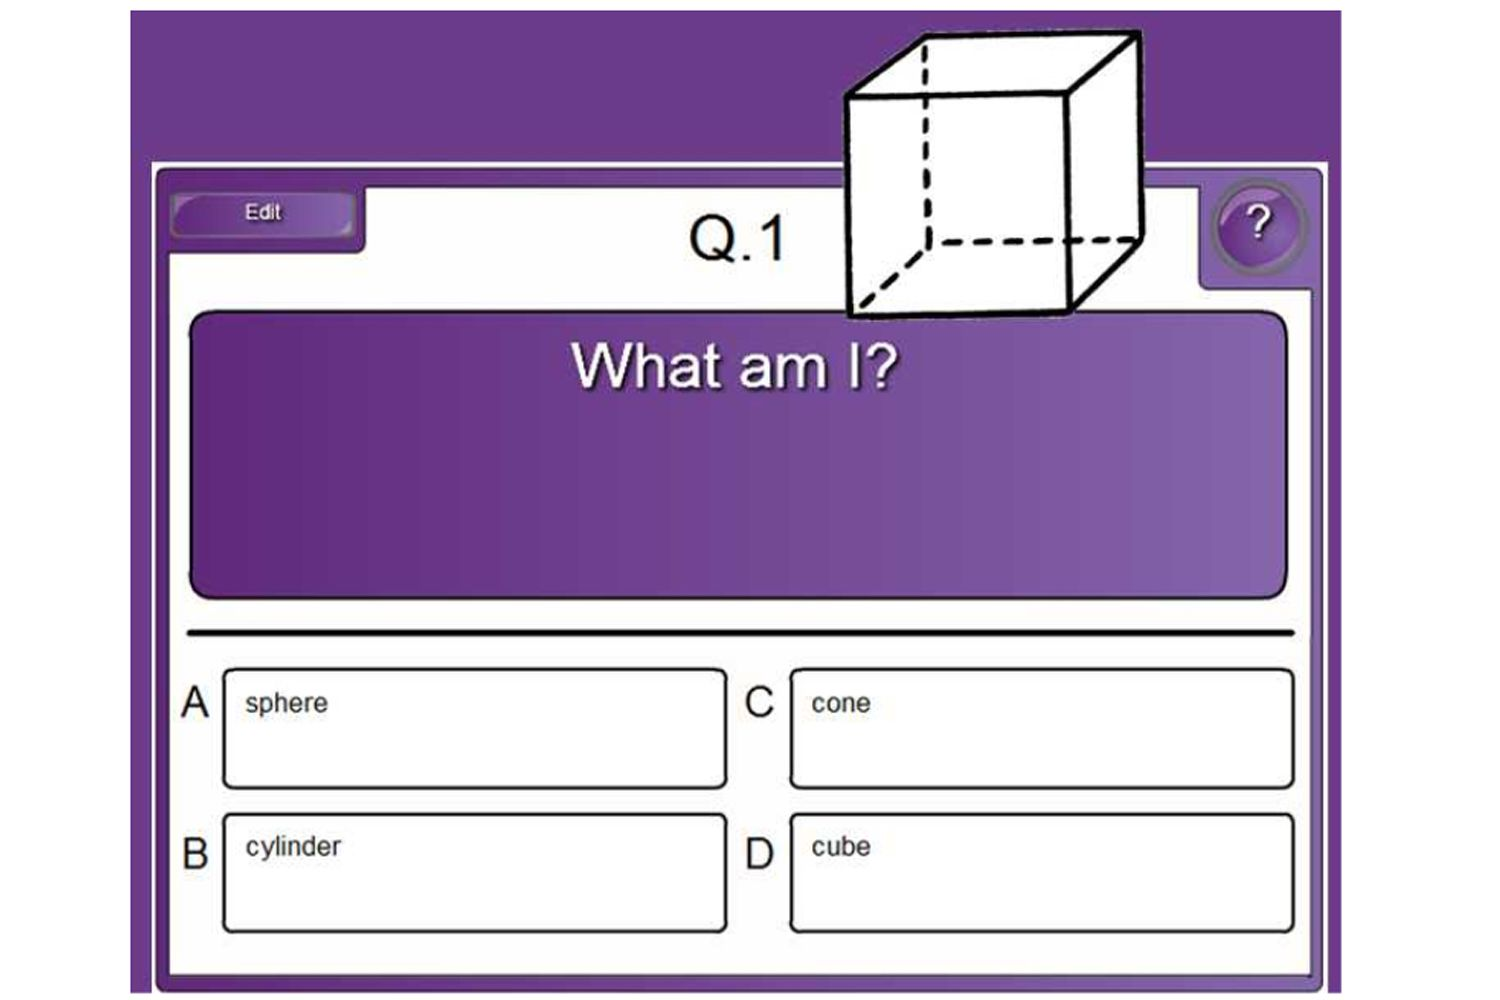 Explore the properties of 3D shapes with this fun and engaging IWB lesson.